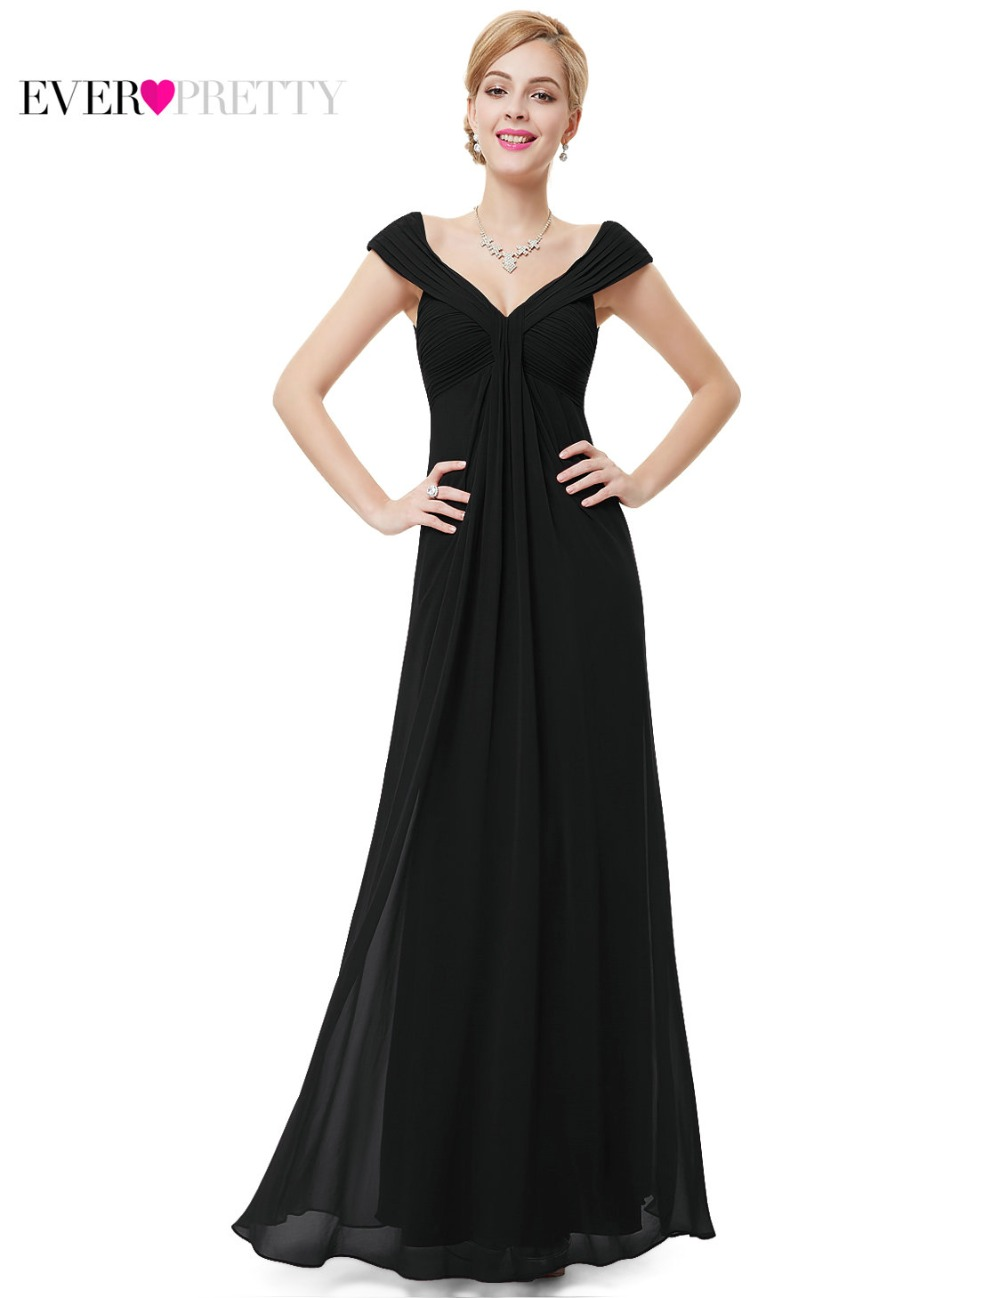 elegant maxi dresses for weddings clearance evening dresses pretty he08457 3853